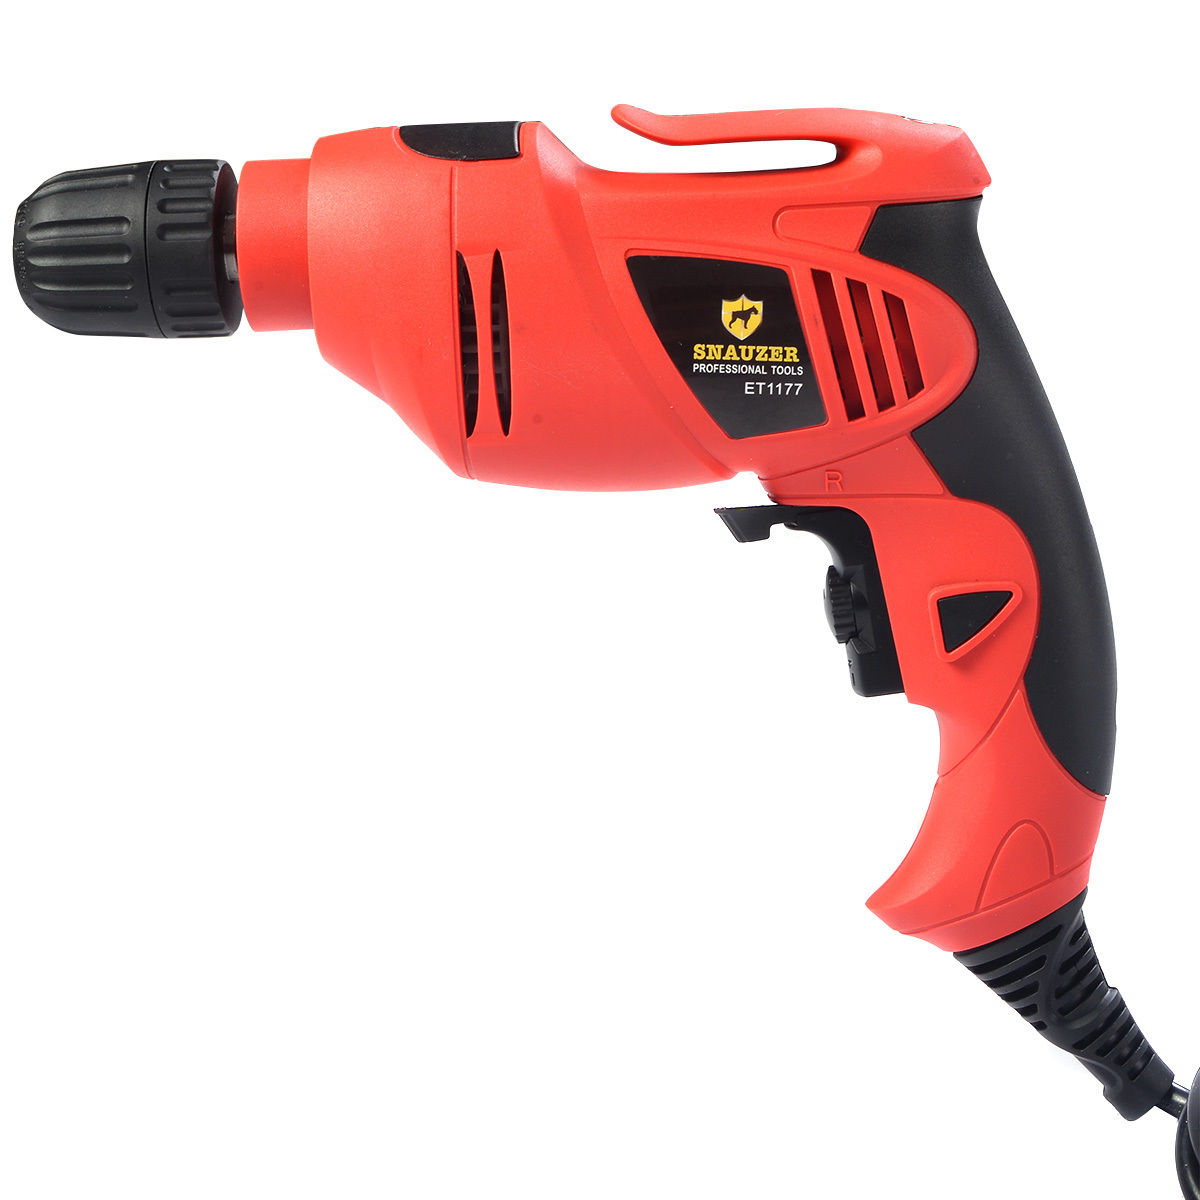 3/8 inch 120V Variable Speed Corded Electric Drill Driver 0-3000 RPM Power Tool